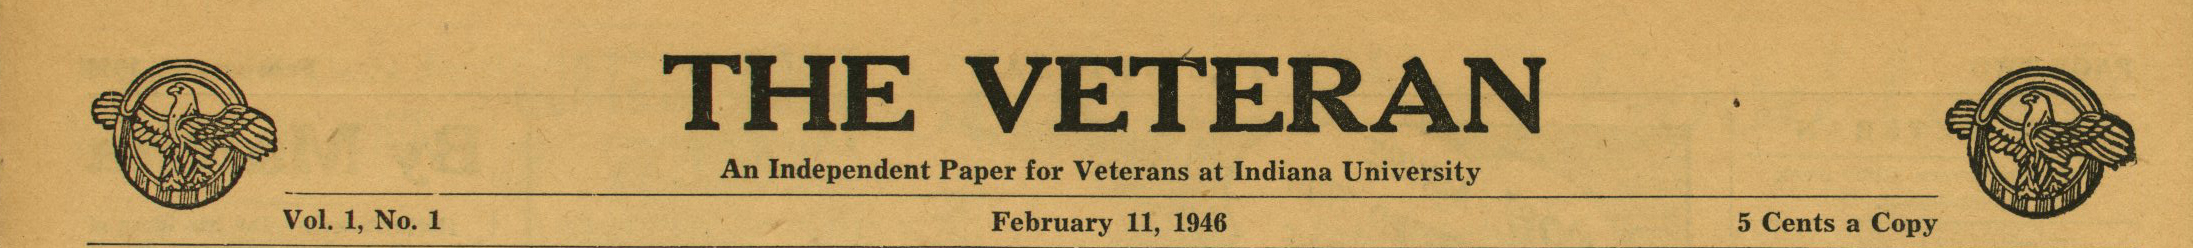 "Masthead from ""The Veteran: An Independent Paper for Veterans of Indiana University"", Vol. 1, No. 1, February 11, 1946, 5 cents a copy"